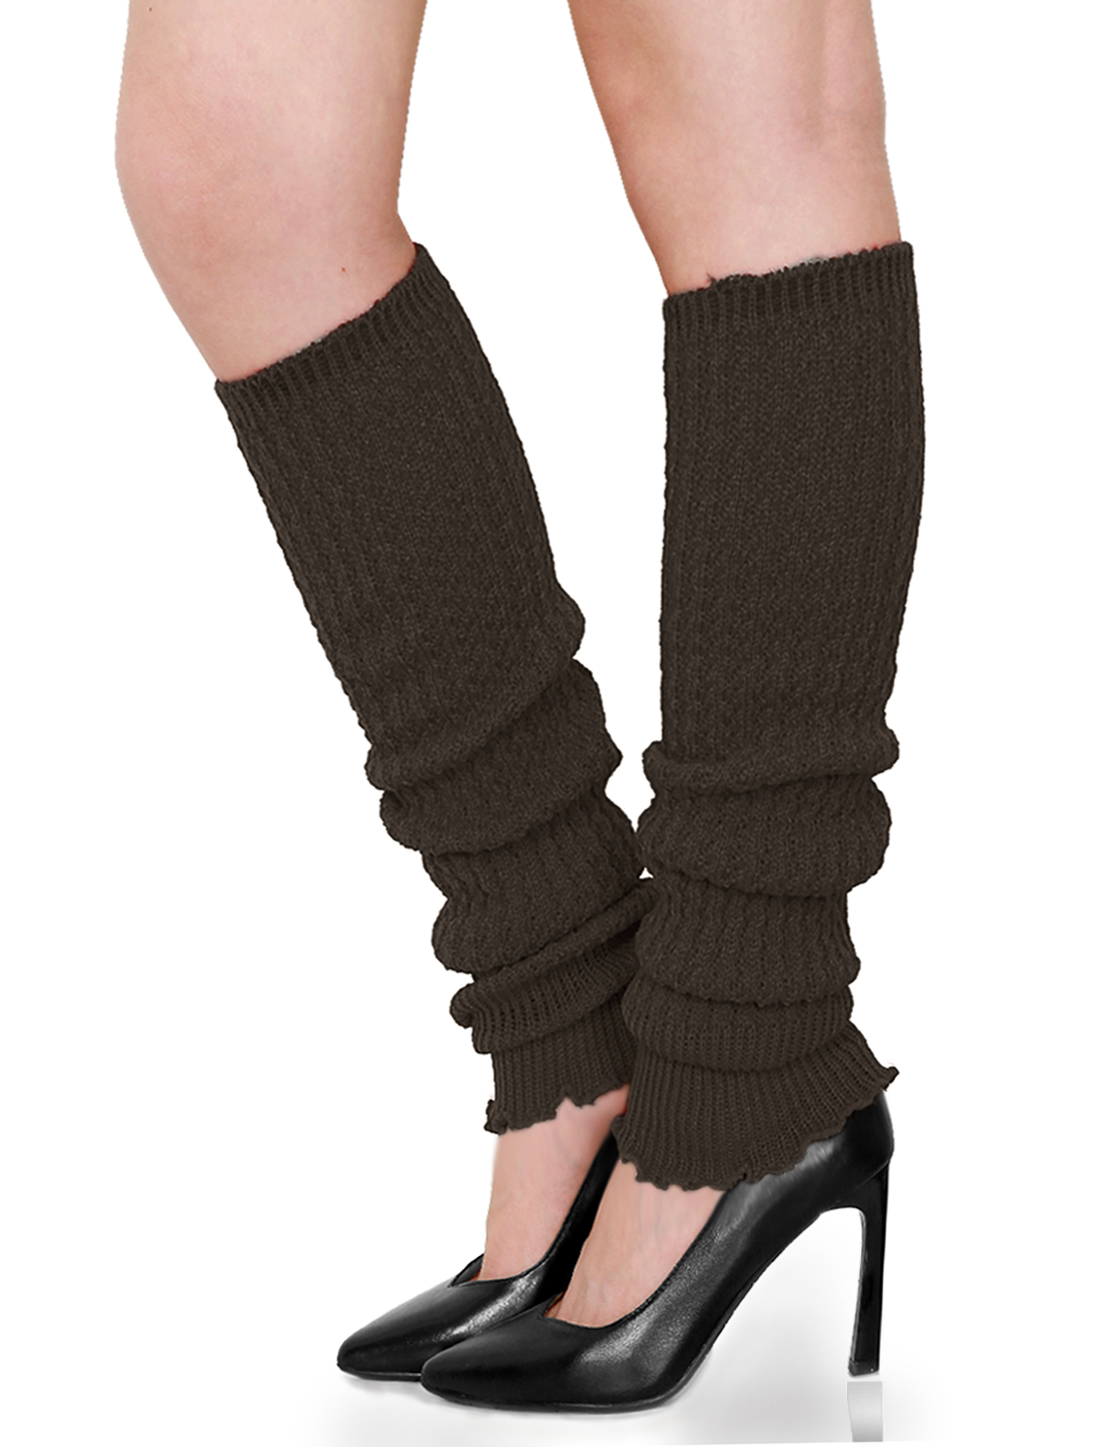 Lady Elastic Cuff Toeless Design Over Knee Knitting Leg Warmers Brown